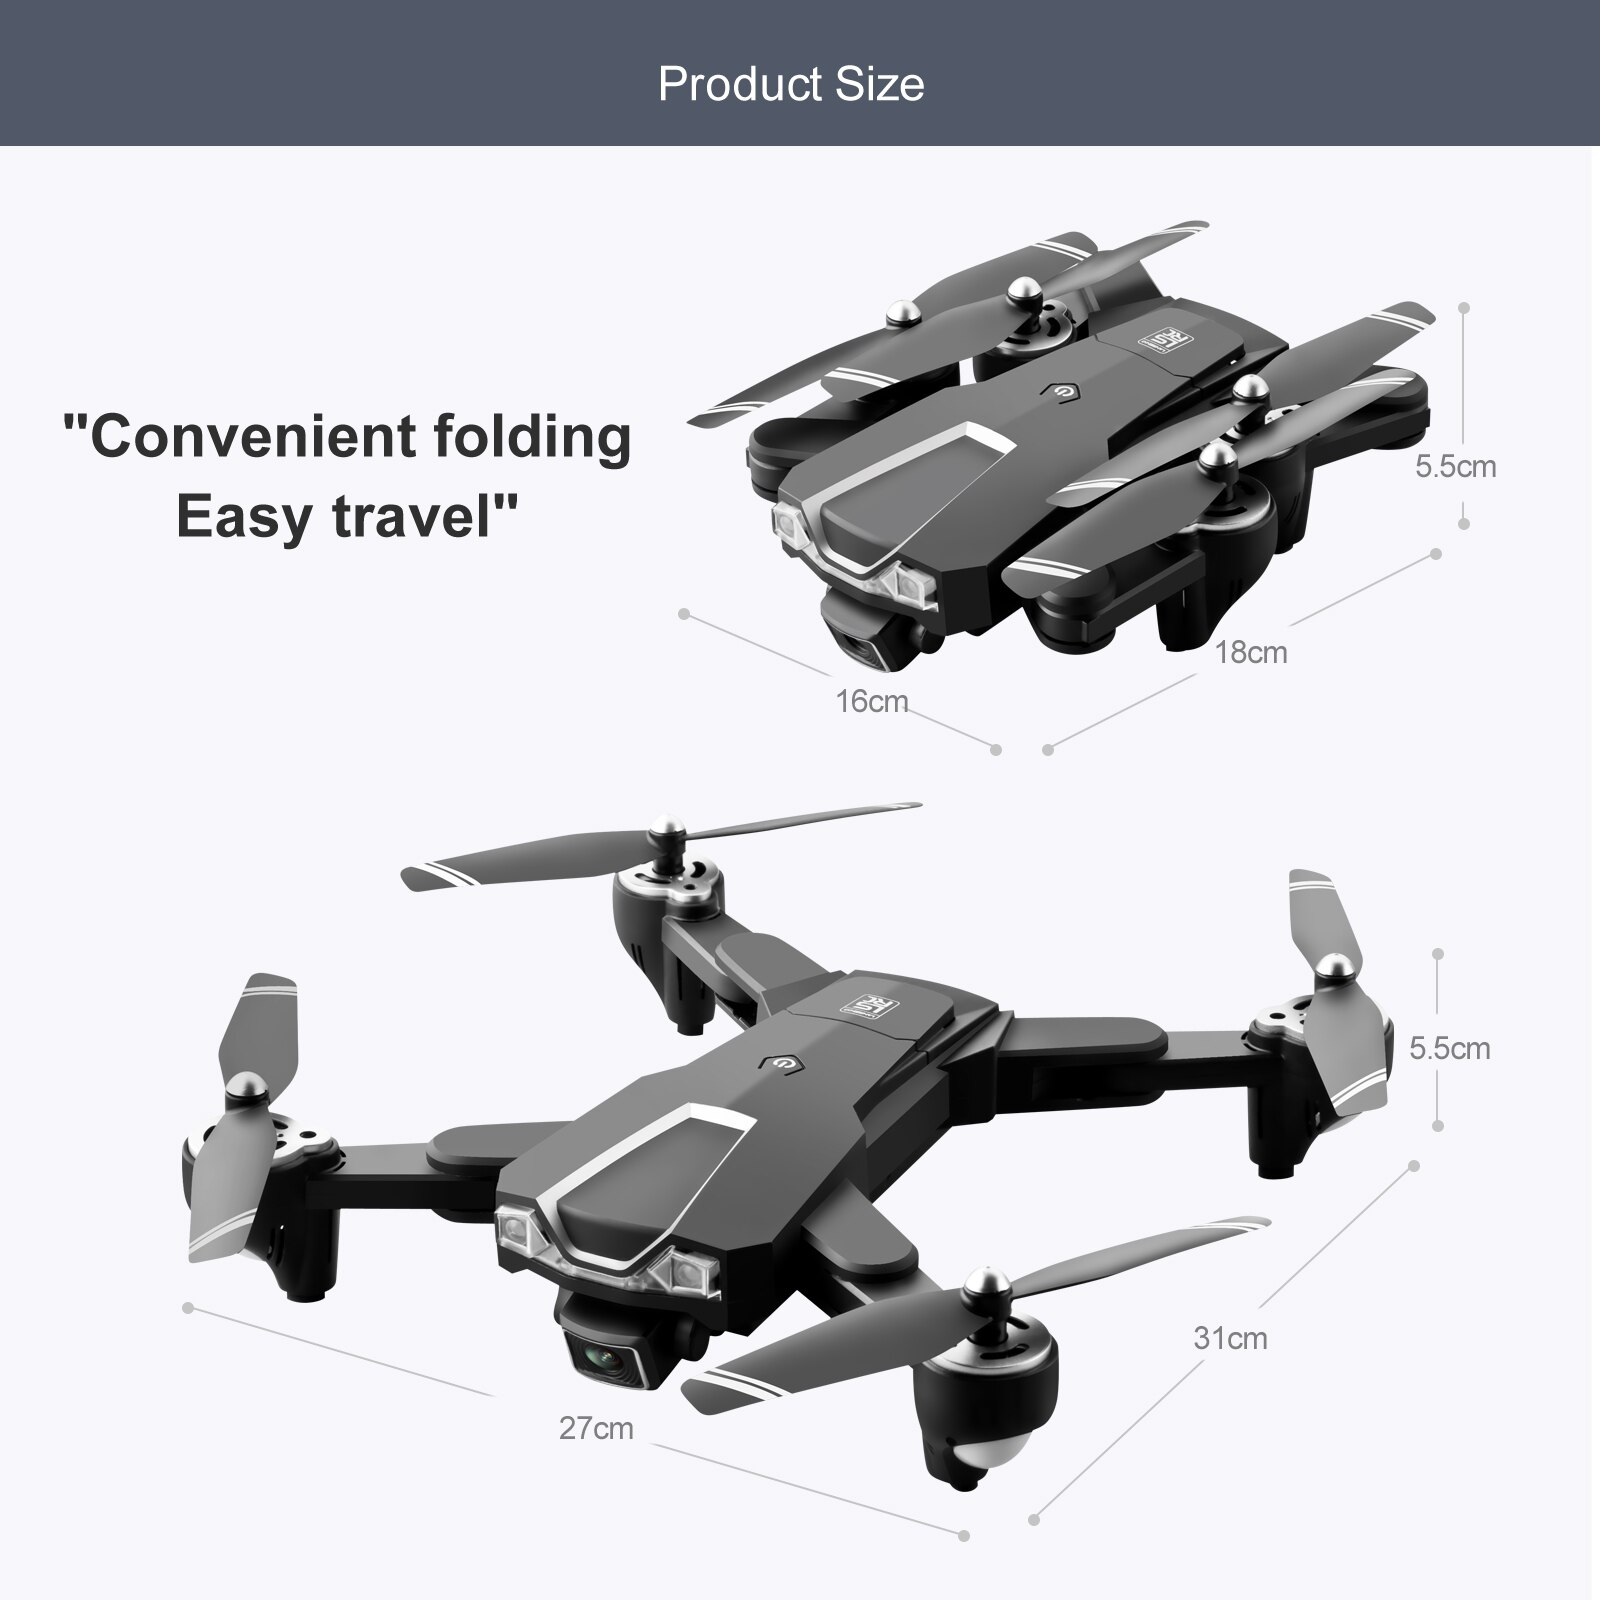 LS25 GPS RC Toy Drone 5G 6K WIFI FPV Foldable Quadcopter HD Dual Camera professional Aerial photography Brushless RC Aircraft enlarge